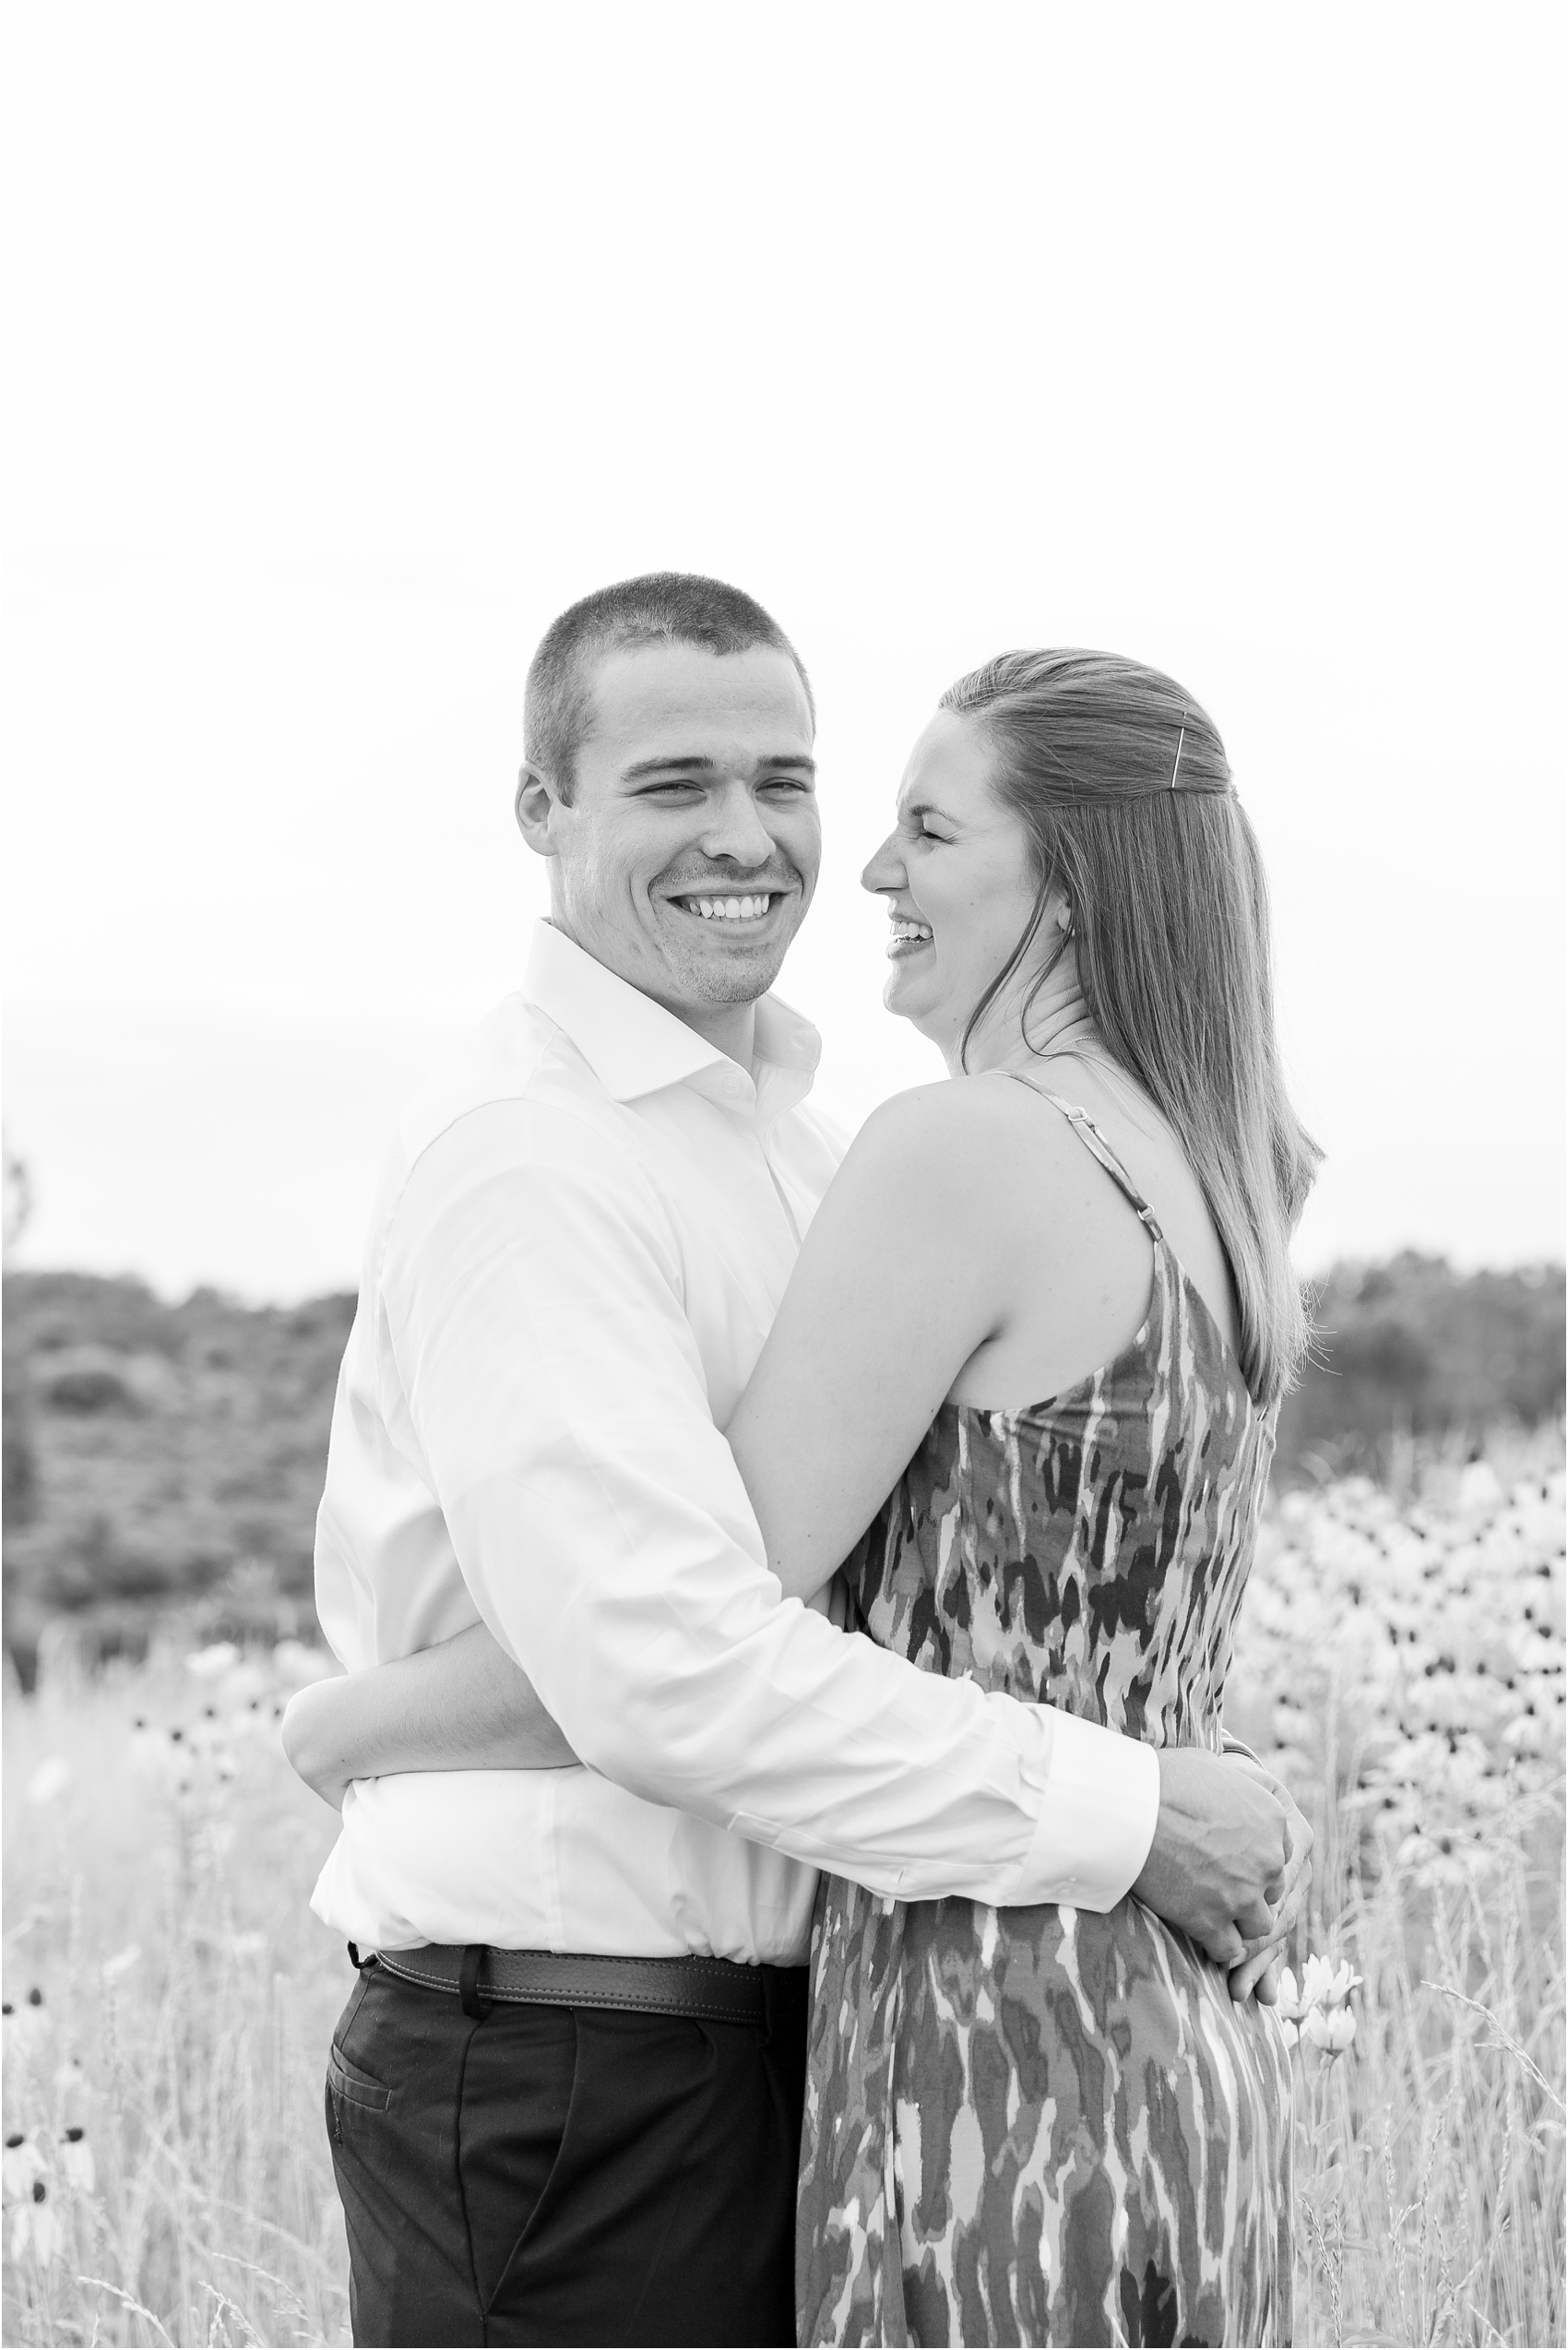 light-hearted-sunset-engagement-photos-at-the-beach-in-oregon-oh-by-courtney-carolyn-photography_0014.jpg